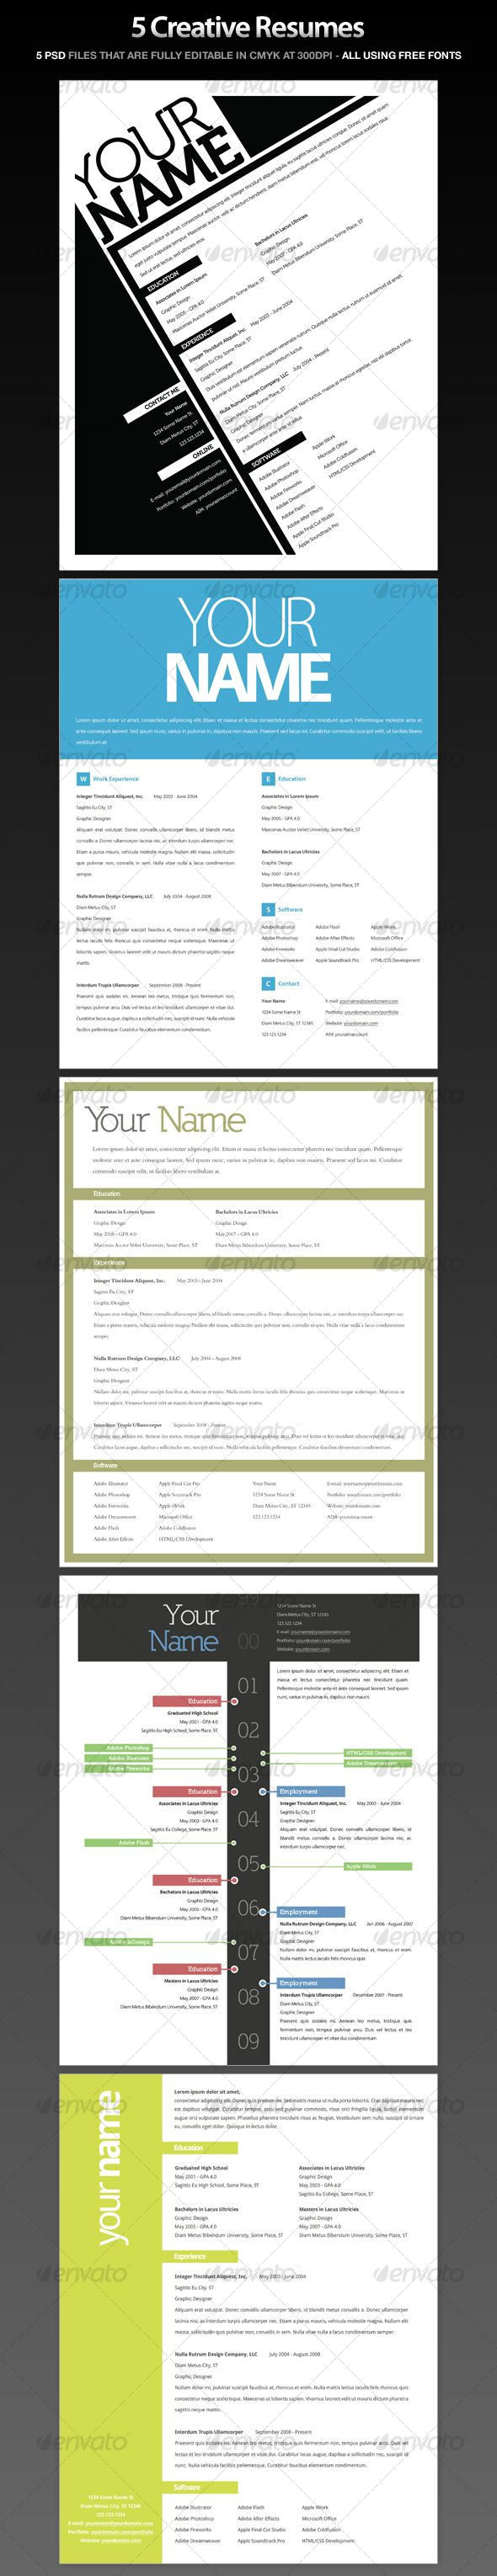 100 cool resume fonts appealing free resume templates